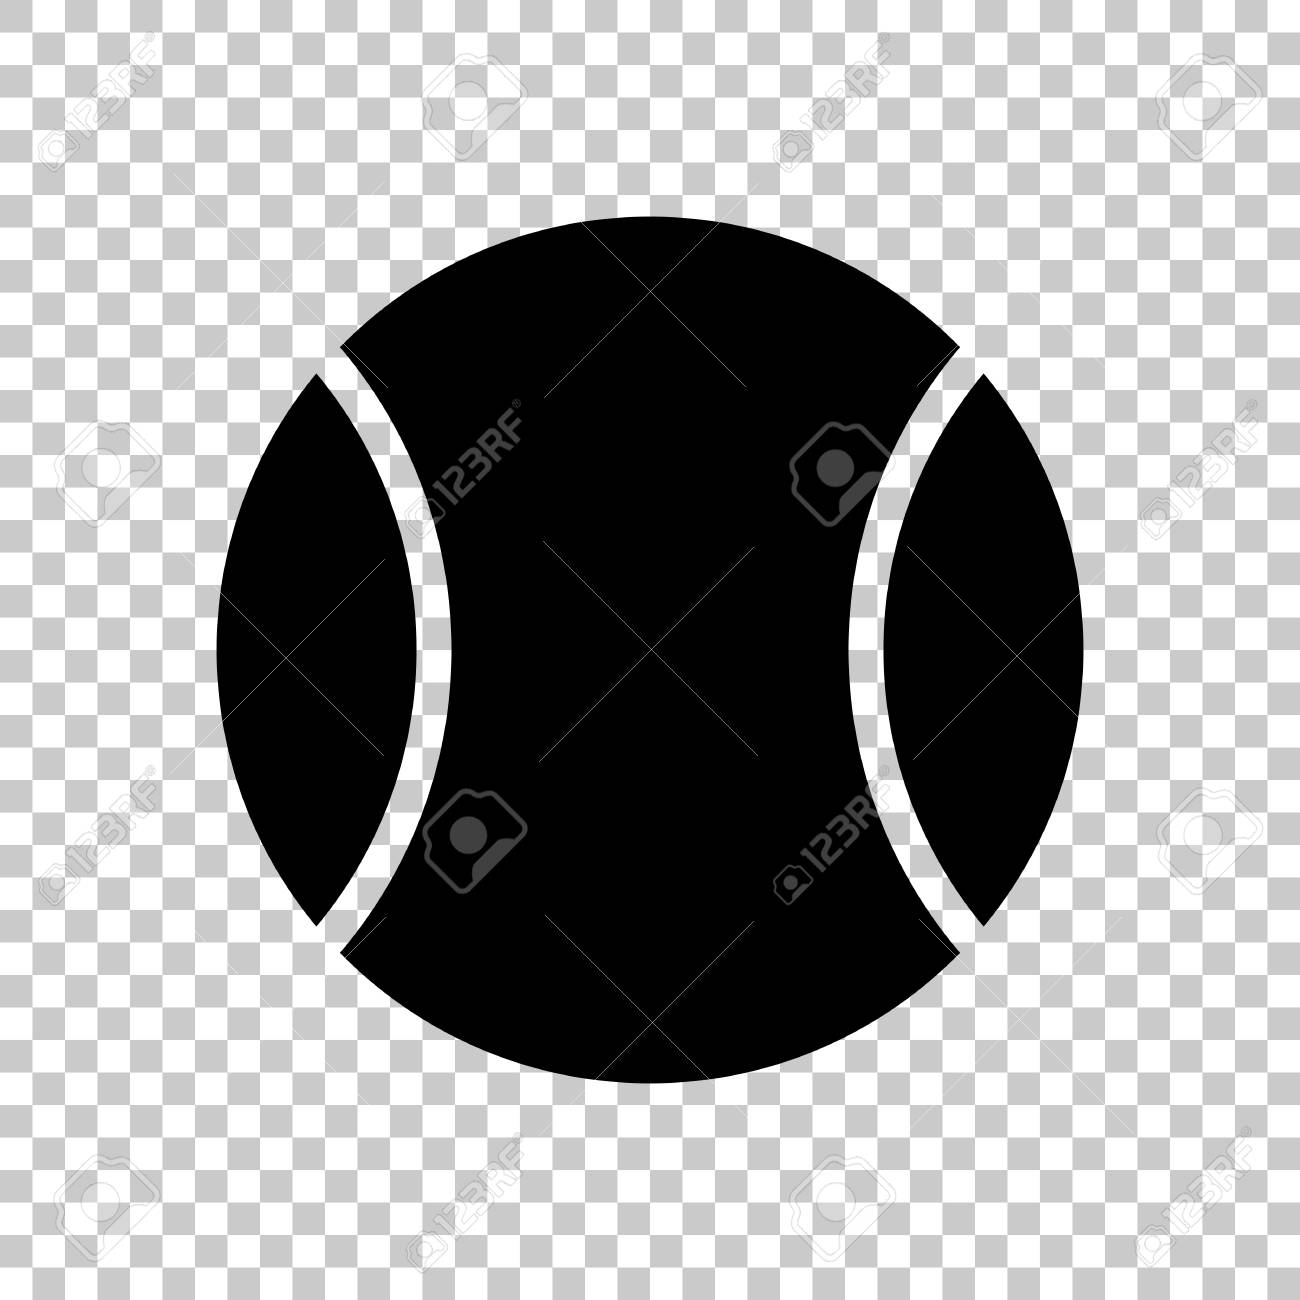 Tennis Ball Sport Game Simple Icon Black Symbol On Transparent Royalty Free Cliparts Vectors And Stock Illustration Image 115138184